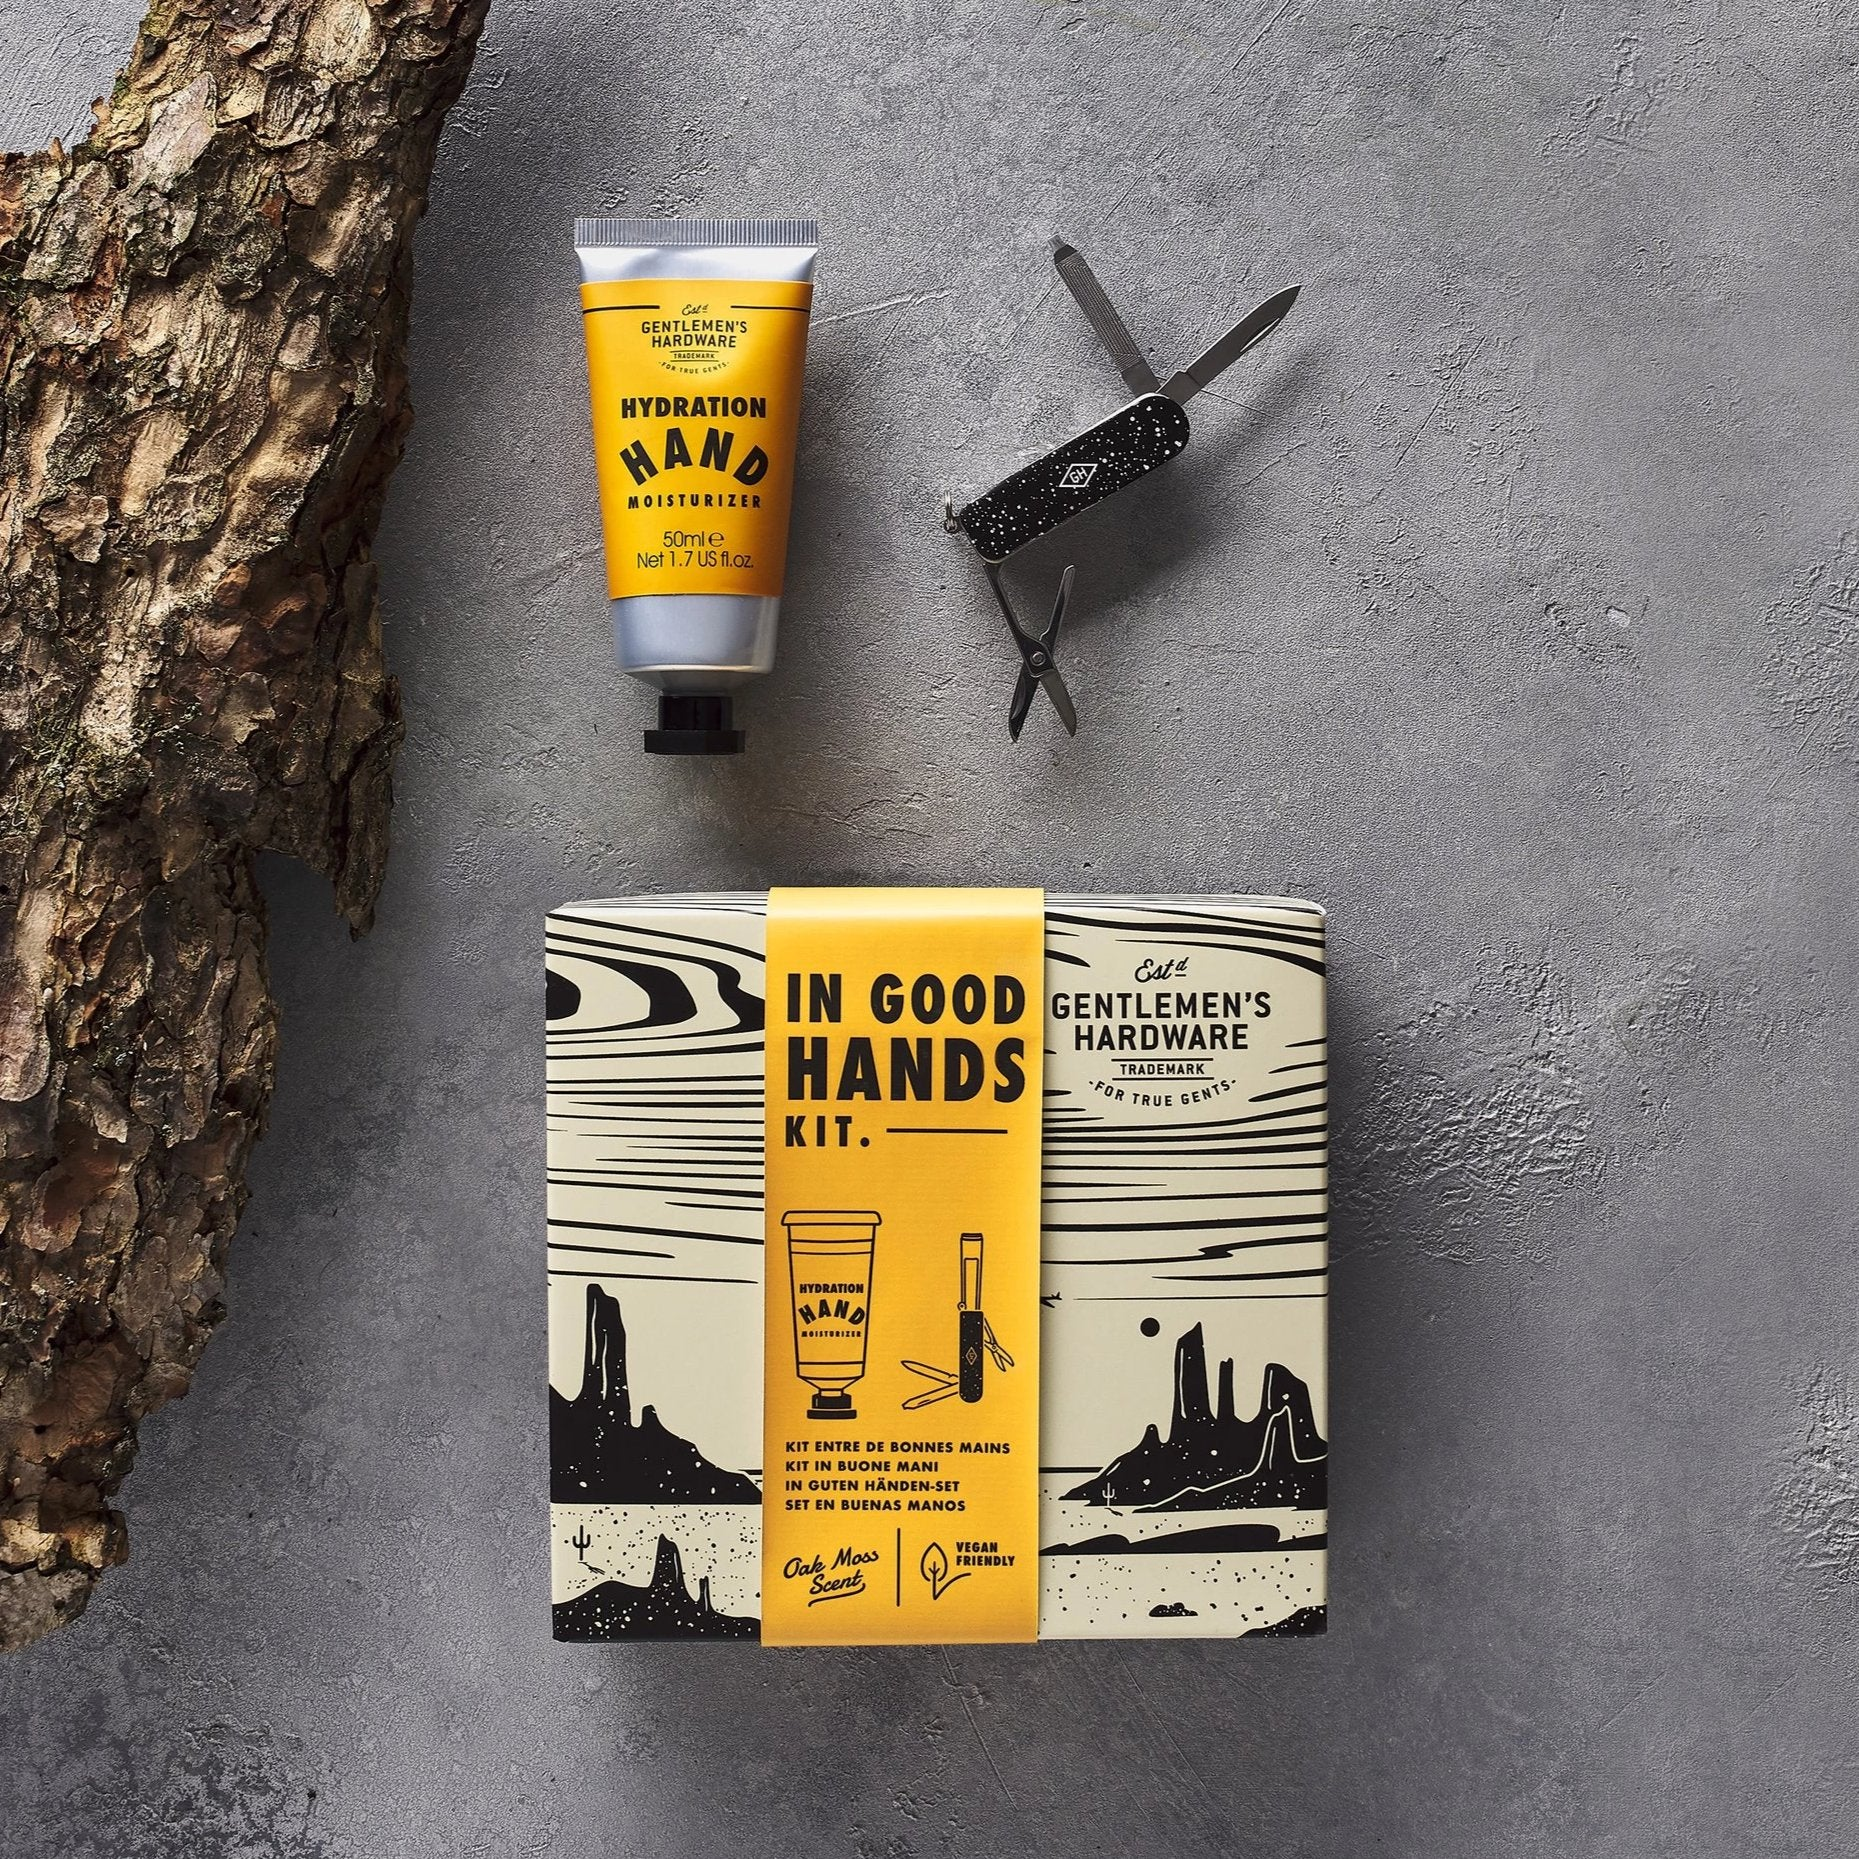 Gents Hardware - In Good Hands Kit Moisturizer and Manicure Tool